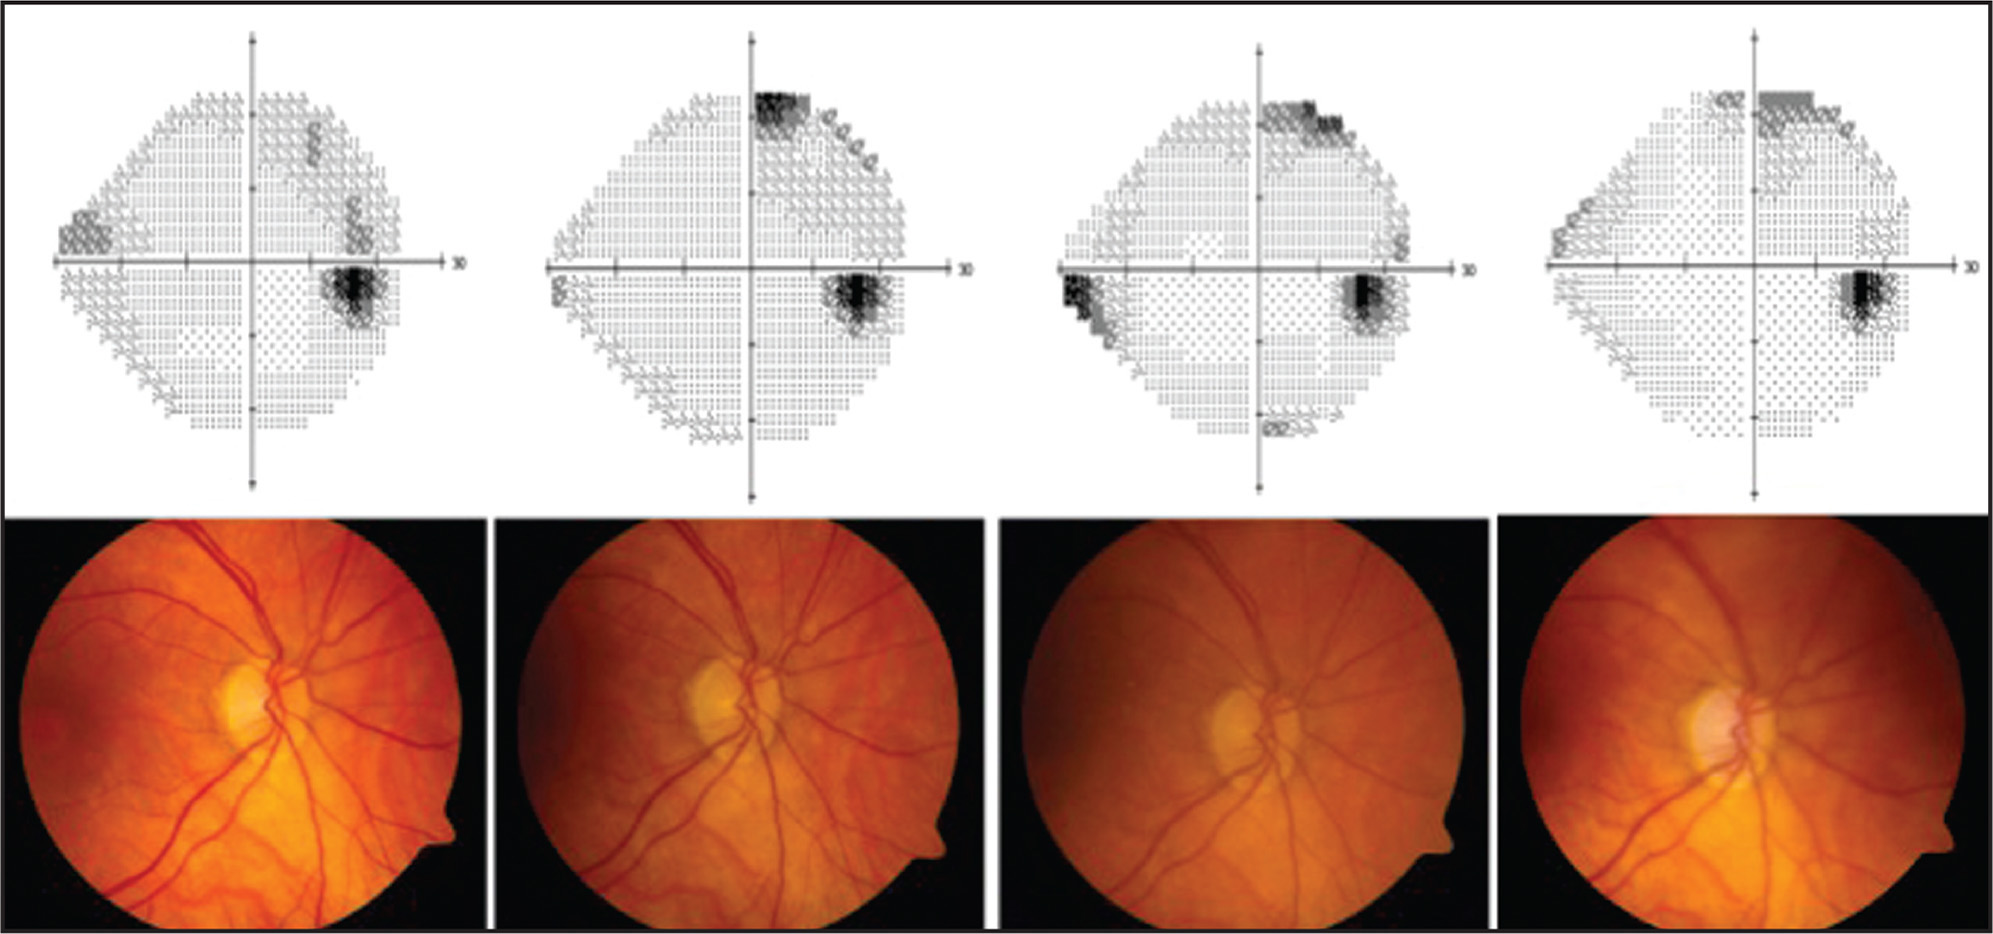 Composite graph of optic nerve color fundus photograph (below) and corresponding visual field (above) of patient 1 study eye taken at baseline (left), 3 months, 12 months, and 24 months (right) postoperatively. Note the superior and nasal defects over time.